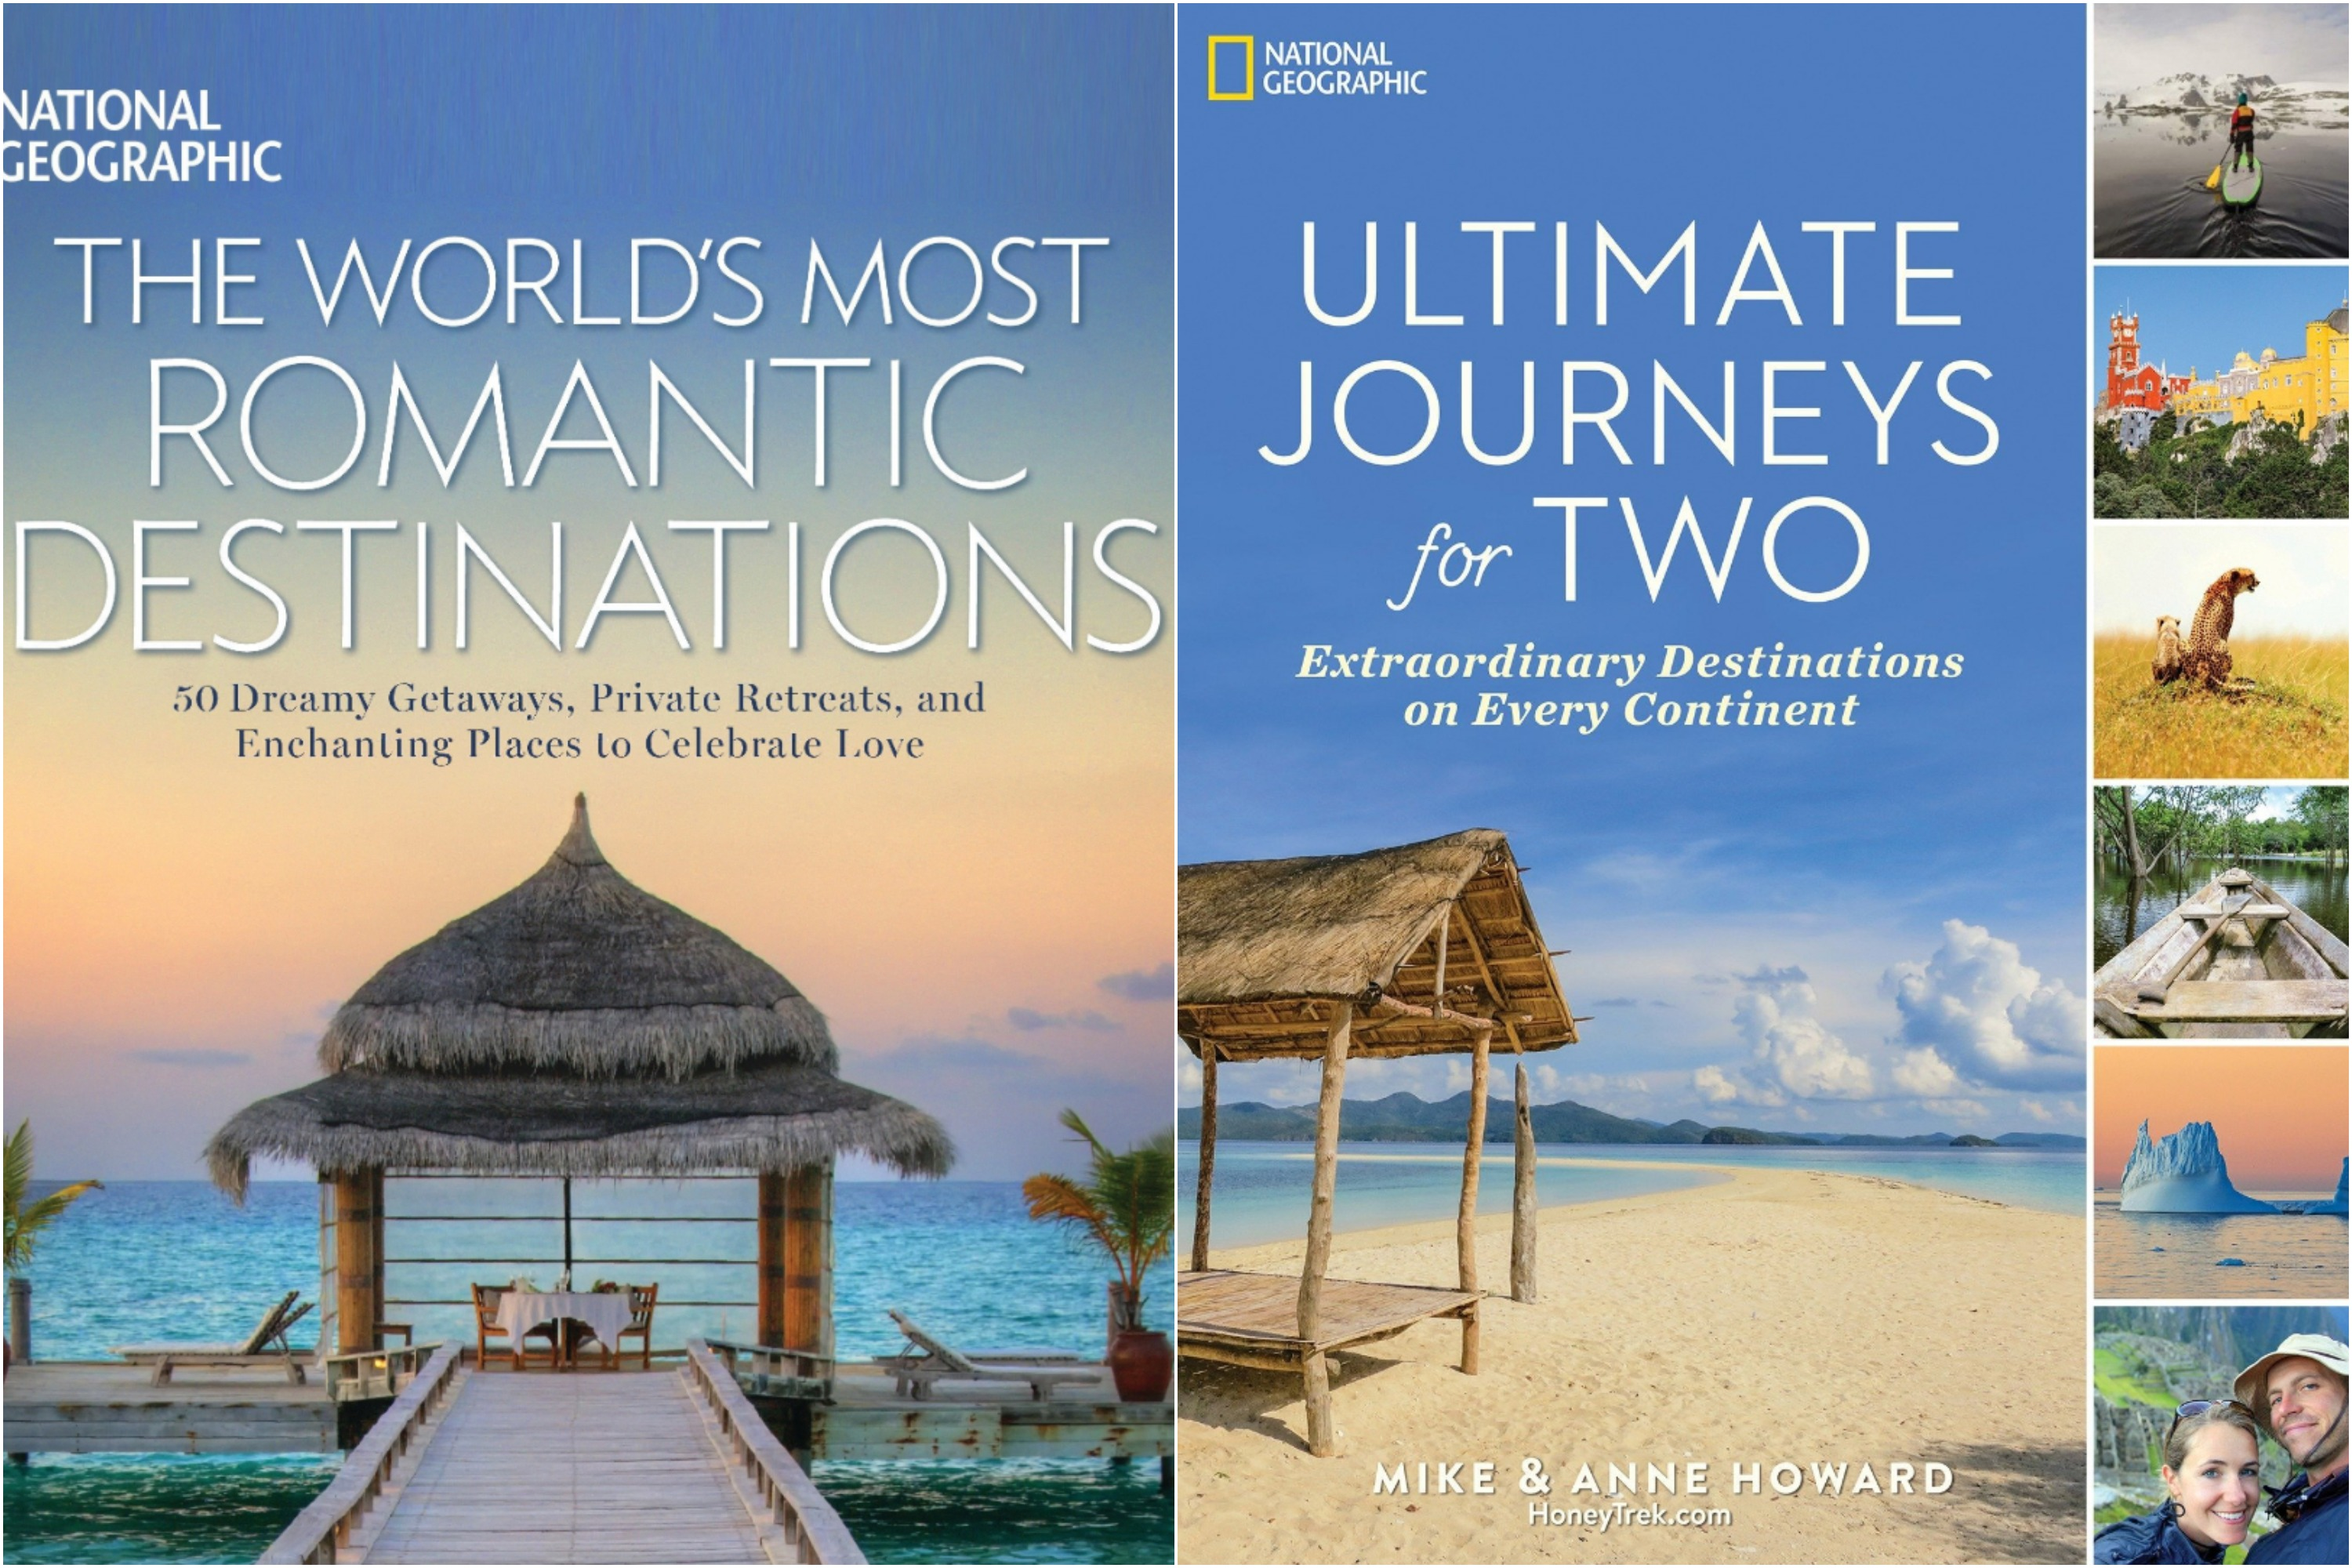 National Geographic Travel Books The World's Most Romantic Destinations Ultimate Journeys For Two Extraordinary Destinations on Every Continent 15 Romantic Travel Gift Ideas for Valentine's Day